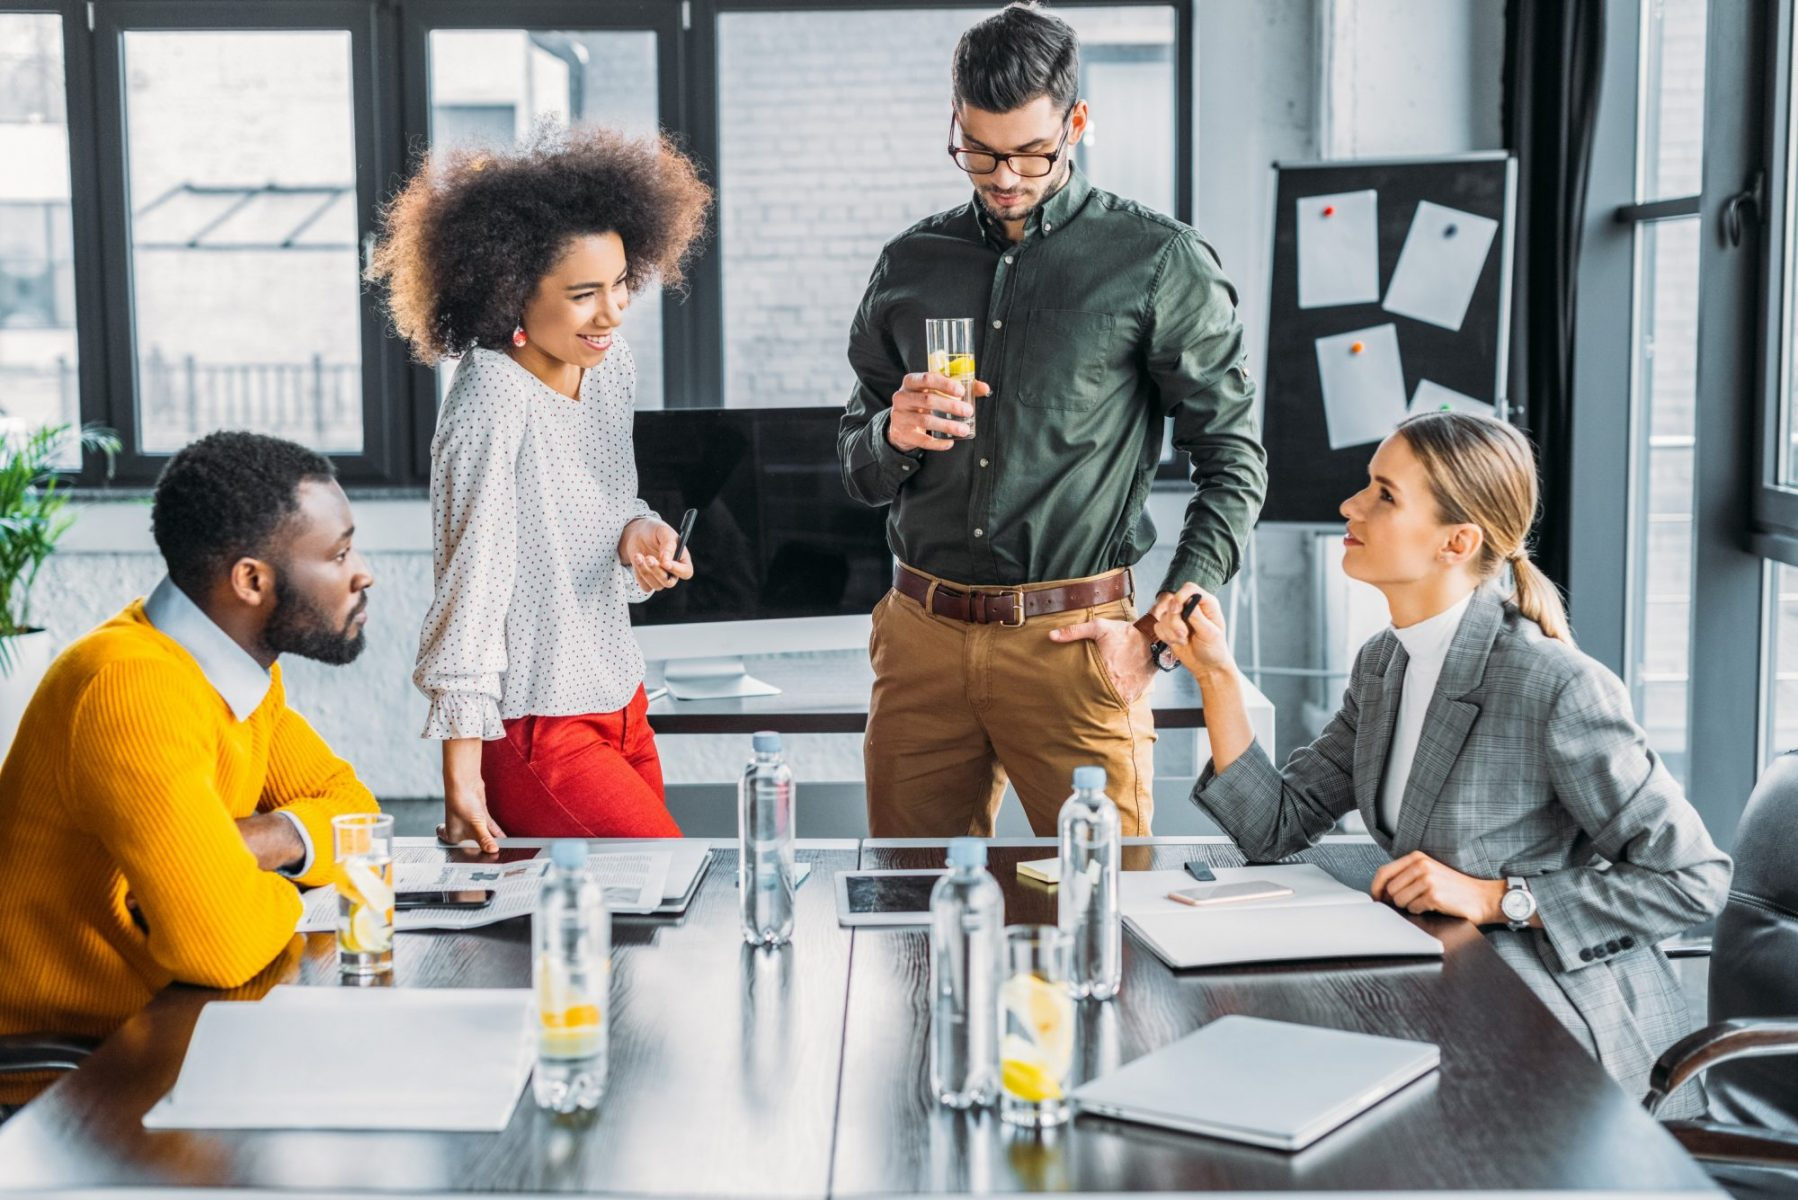 : Southern California, the Central Coast and Bakersfield Area Hydrated Employees | Health and Wellness | Positive Lifestyl: Southern California, the Central Coast and Bakersfield Area Hydrated Employees | Health and Wellness | Positive Lifestyle Choices | Promote Productivitye Choices | Promote Productivity